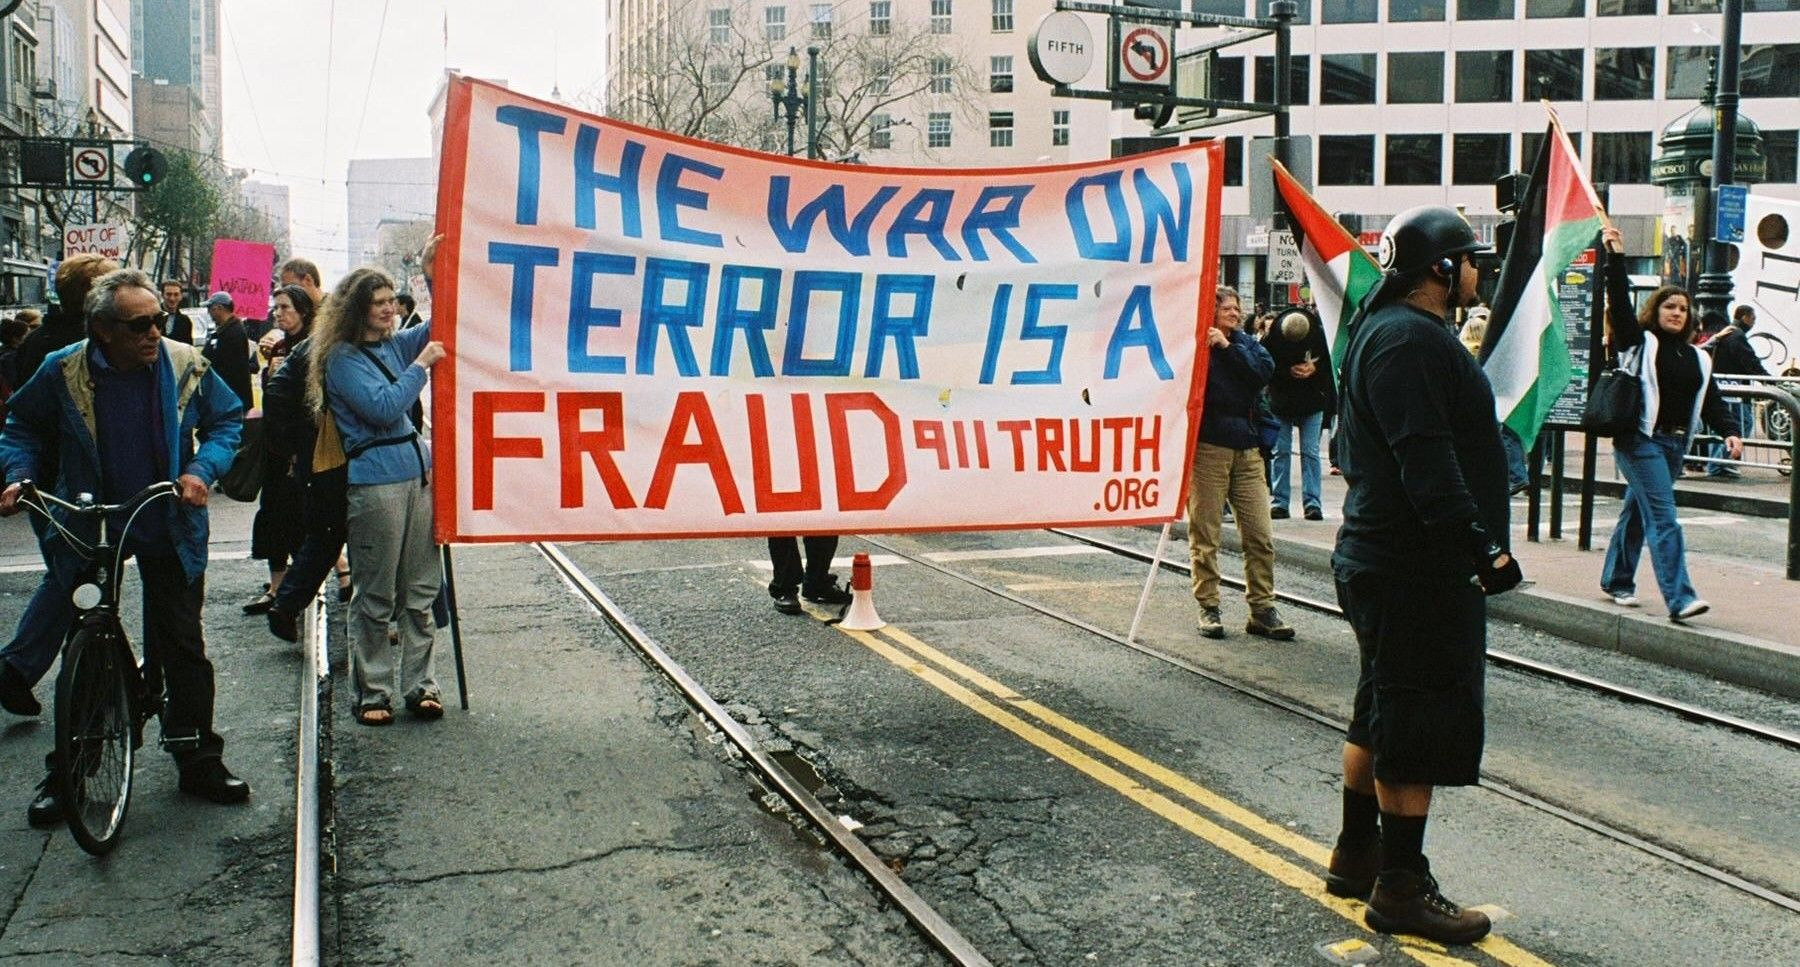 10 Of The Most Shocking Scandals Of The War On Terror